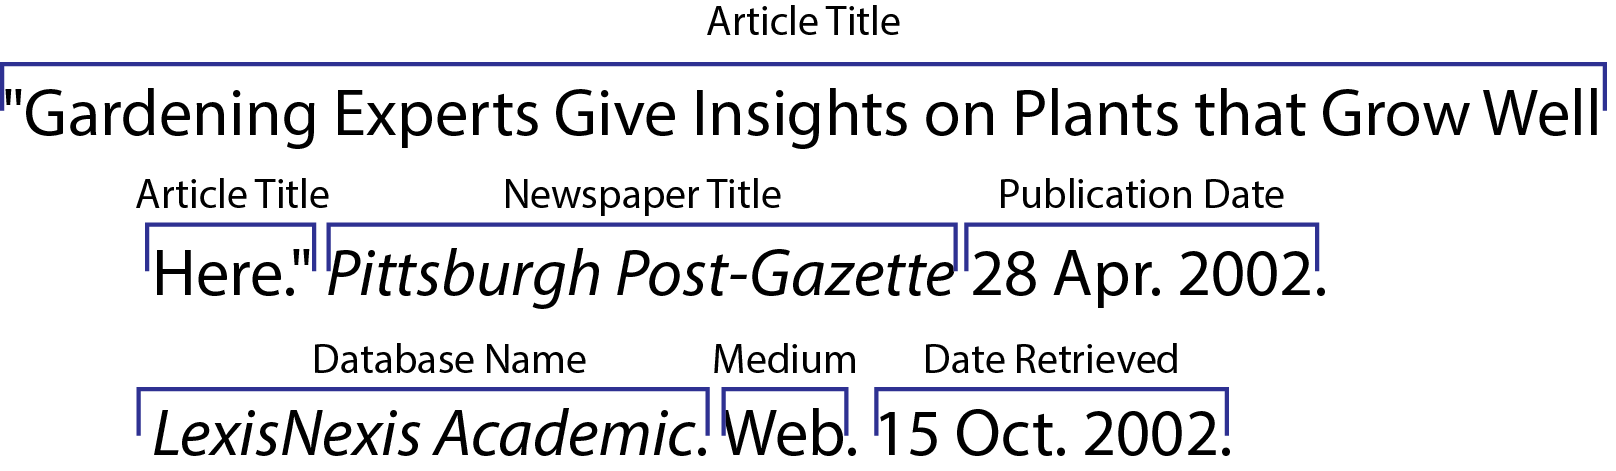 mla format for newspaper article Newspaper article-mla format author(s) title of article: subtitle the date for newspaper articles in both mla and apa format, be sure to write the date of.